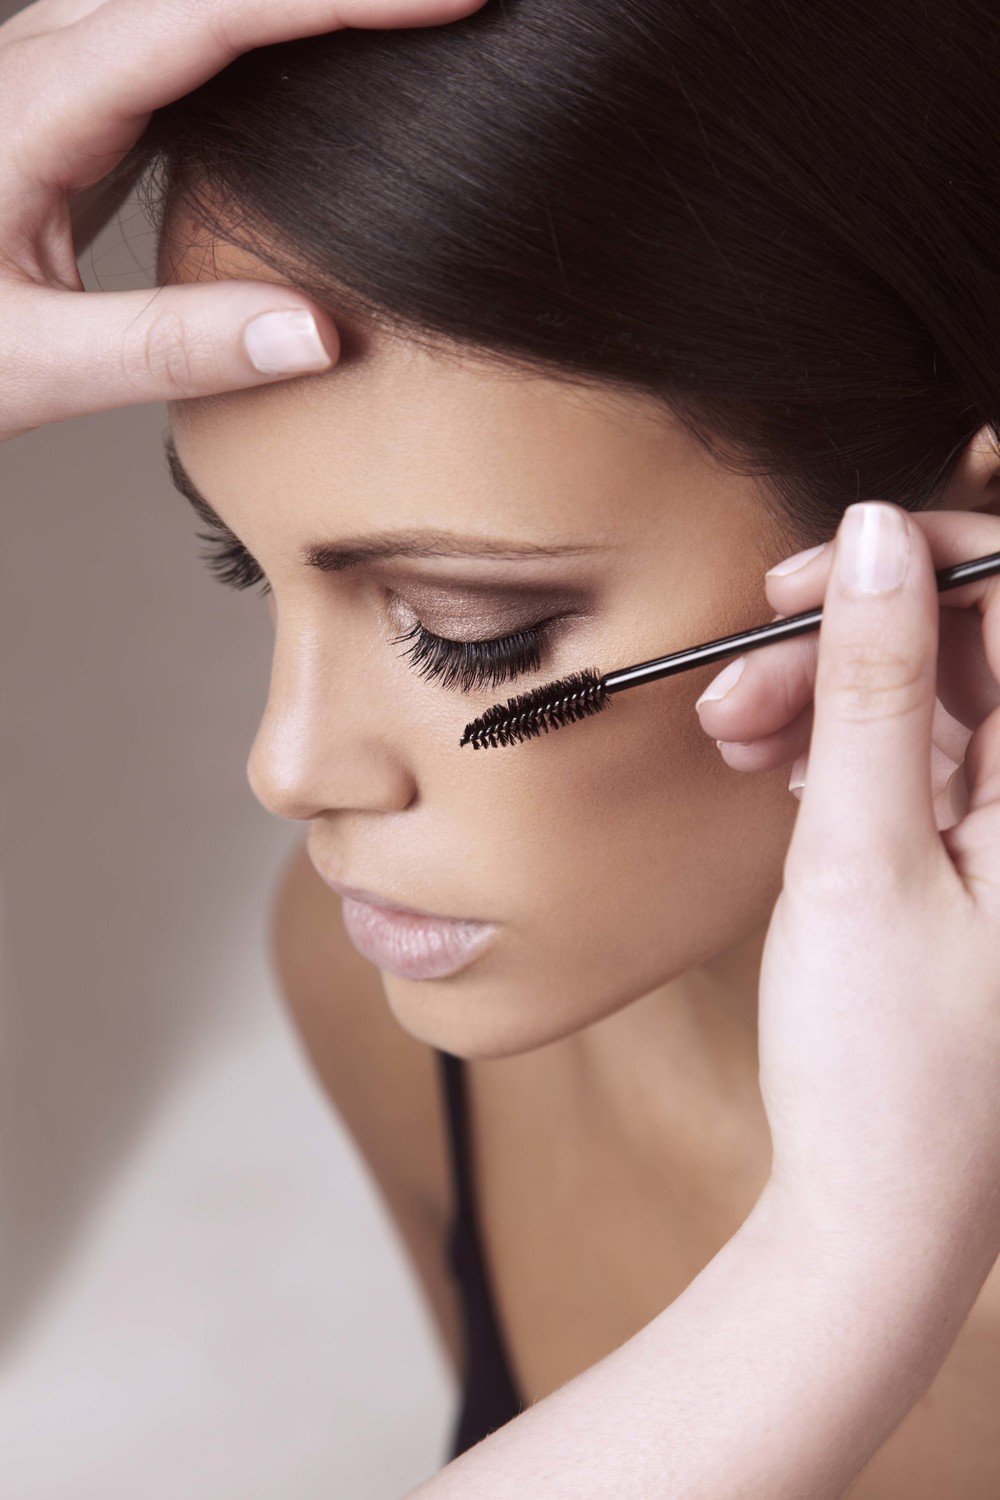 Use a disposable mascara wand to clean your lashes!